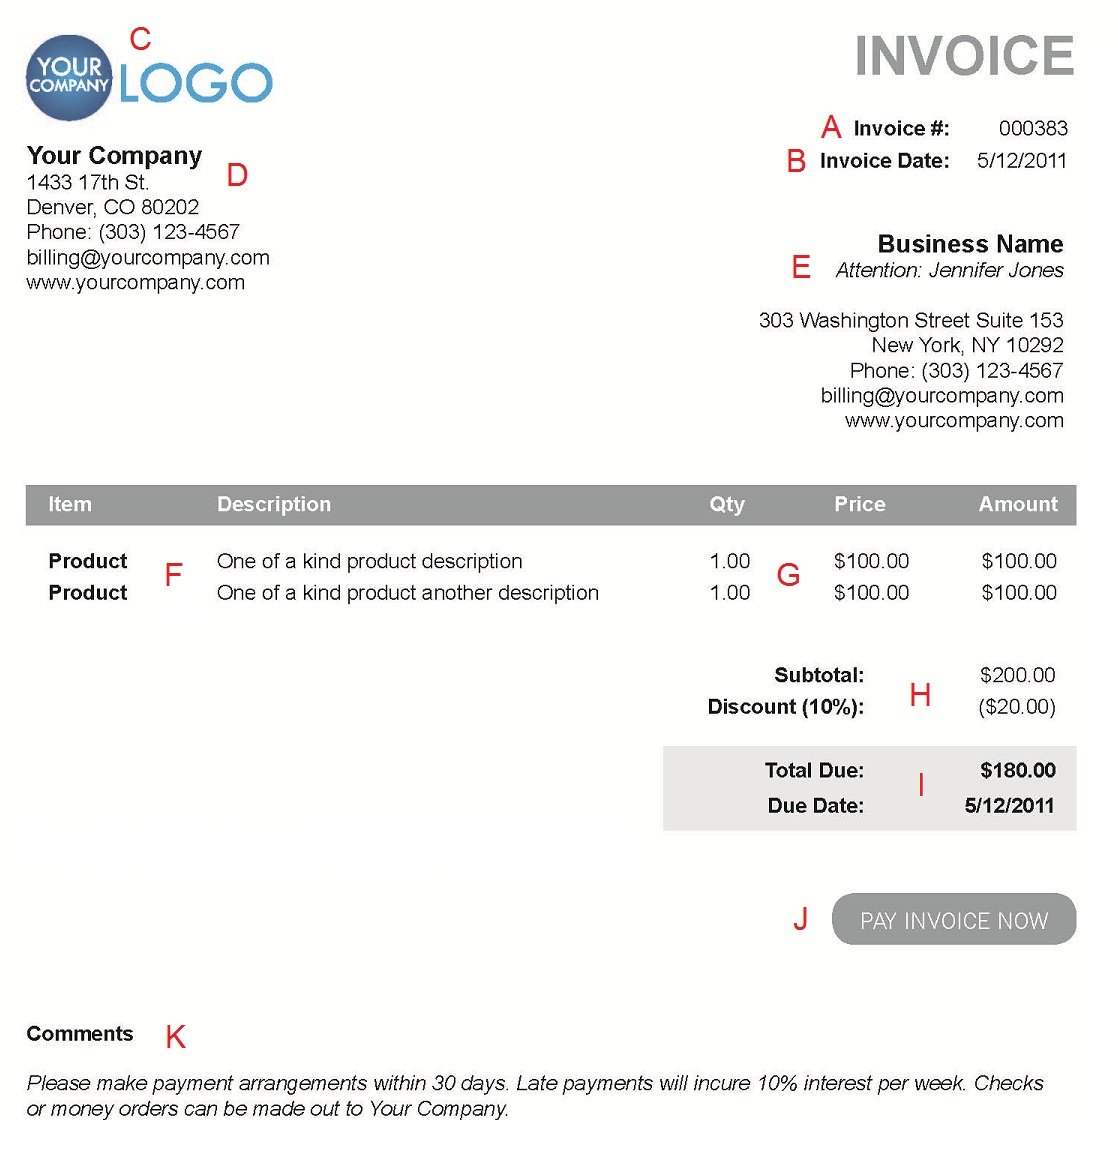 Ultrablogus  Stunning The  Different Sections Of An Electronic Payment Invoice With Lovely A  With Attractive How To Make A Receipt Online Also Bluetooth Receipt Printer Ipad In Addition Receipt Envelopes And Receipts Templates As Well As Delaware Gross Receipts Additionally Toys R Us Return Policy Without A Receipt From Paysimplecom With Ultrablogus  Lovely The  Different Sections Of An Electronic Payment Invoice With Attractive A  And Stunning How To Make A Receipt Online Also Bluetooth Receipt Printer Ipad In Addition Receipt Envelopes From Paysimplecom